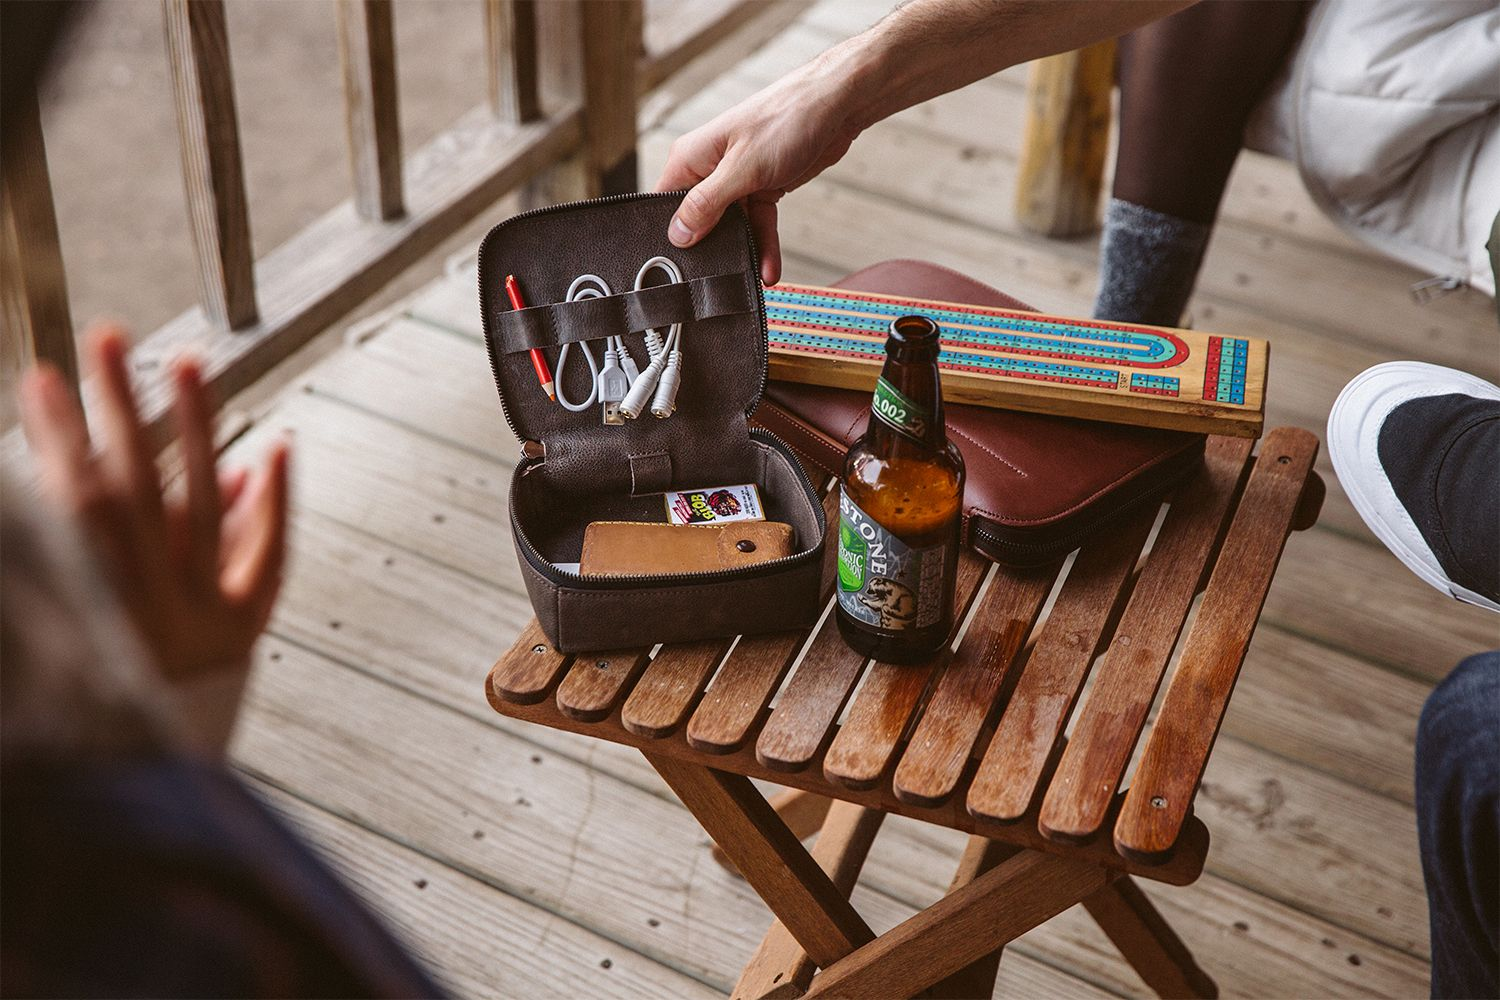 Pin by This Is Ground on holiday '16 Tech dopp kit